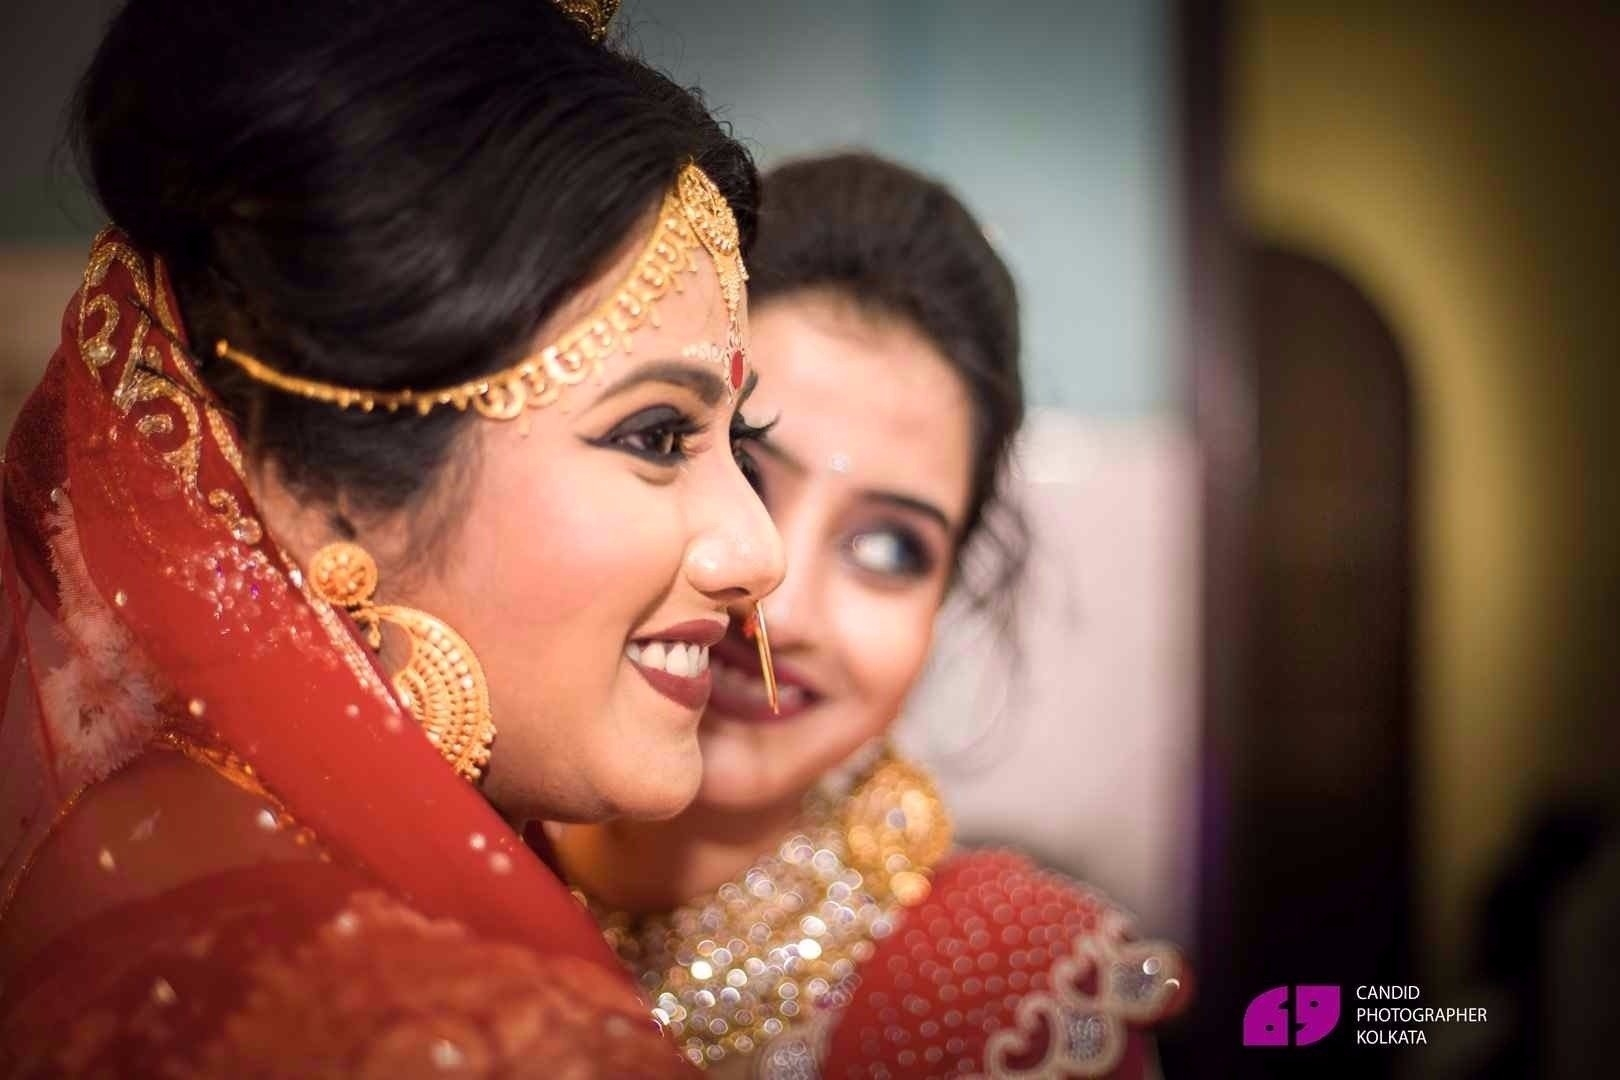 Candid Wedding Photography in Kolkata | Candid Photographer Kolkata